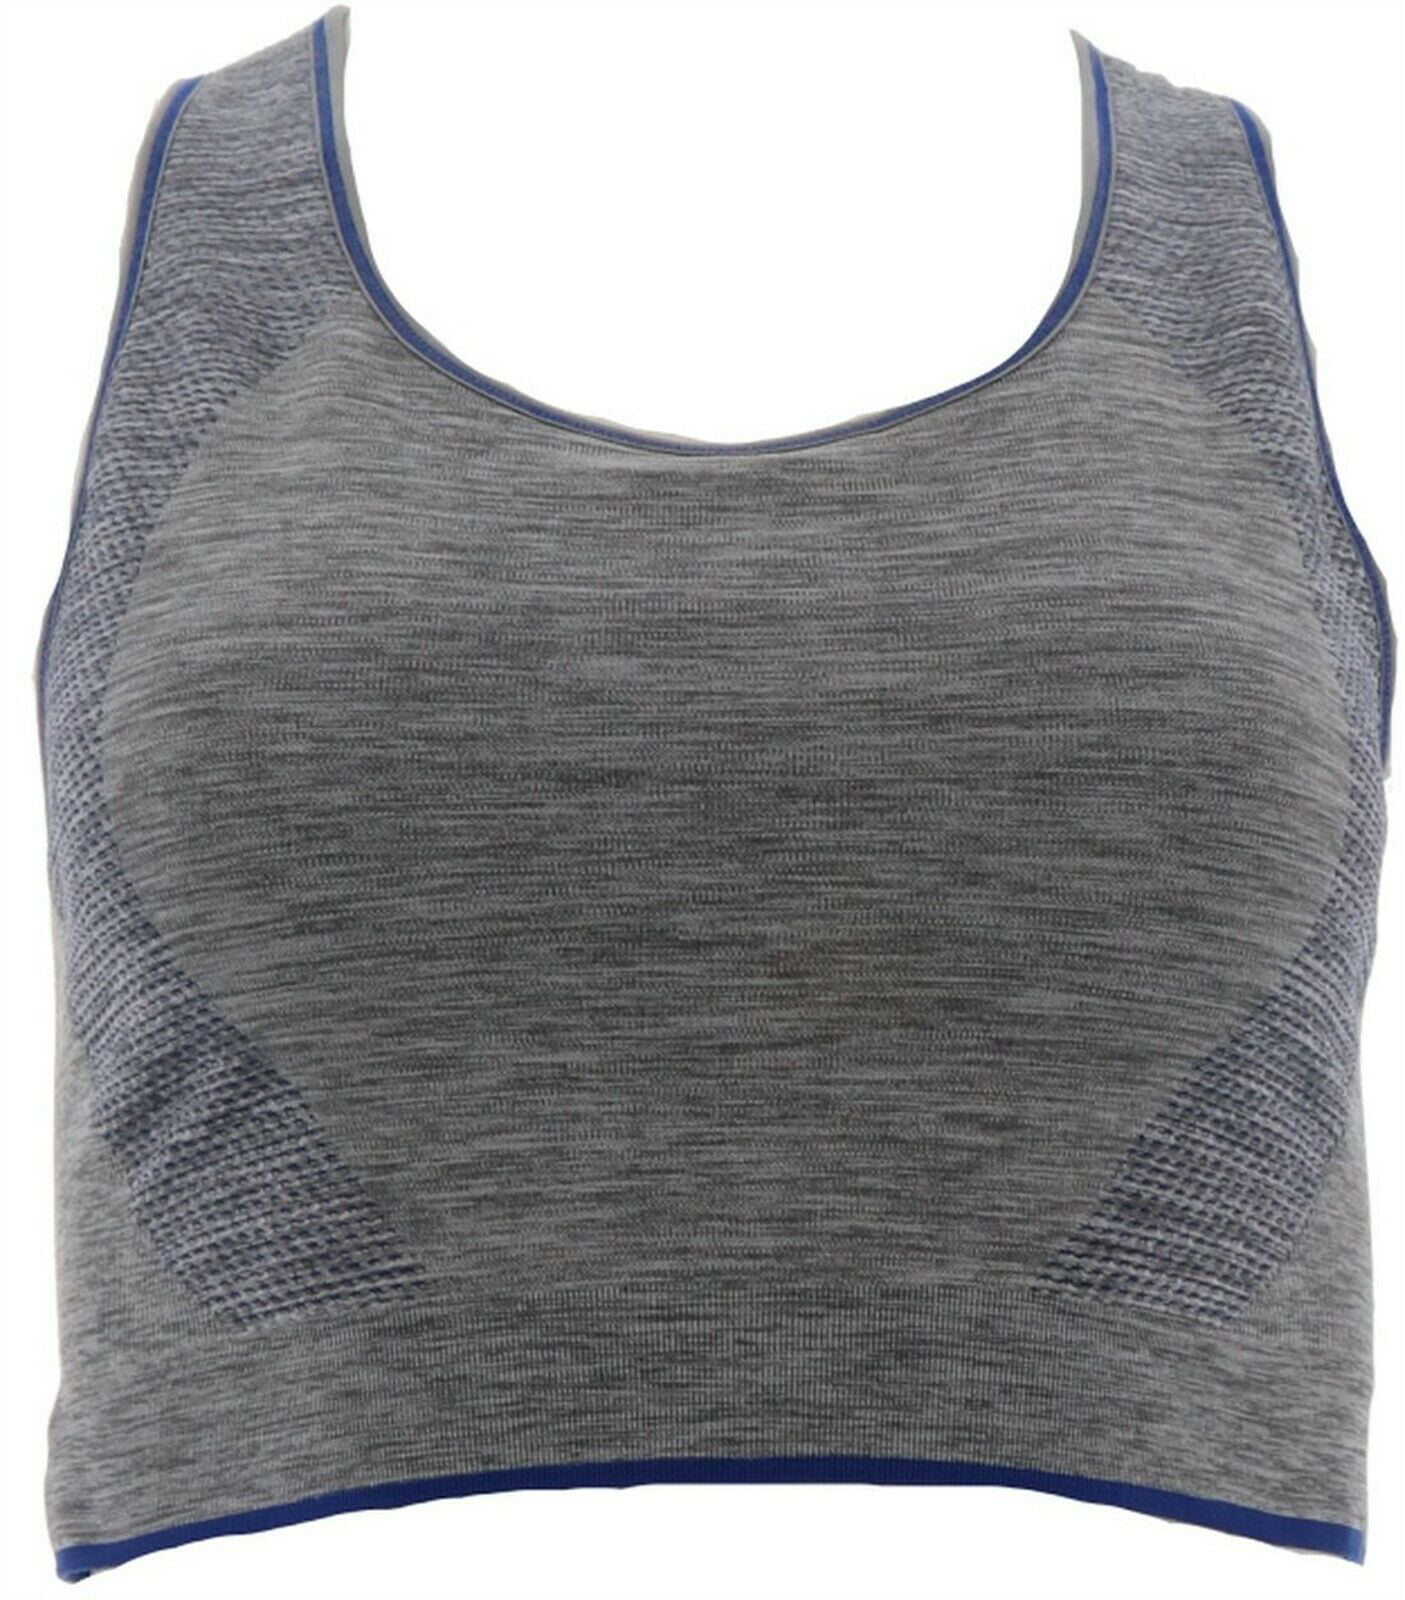 Tracy Anderson GILI Seamless Reversible Sports Bra Grey Deep Blue 3X NEW A308066